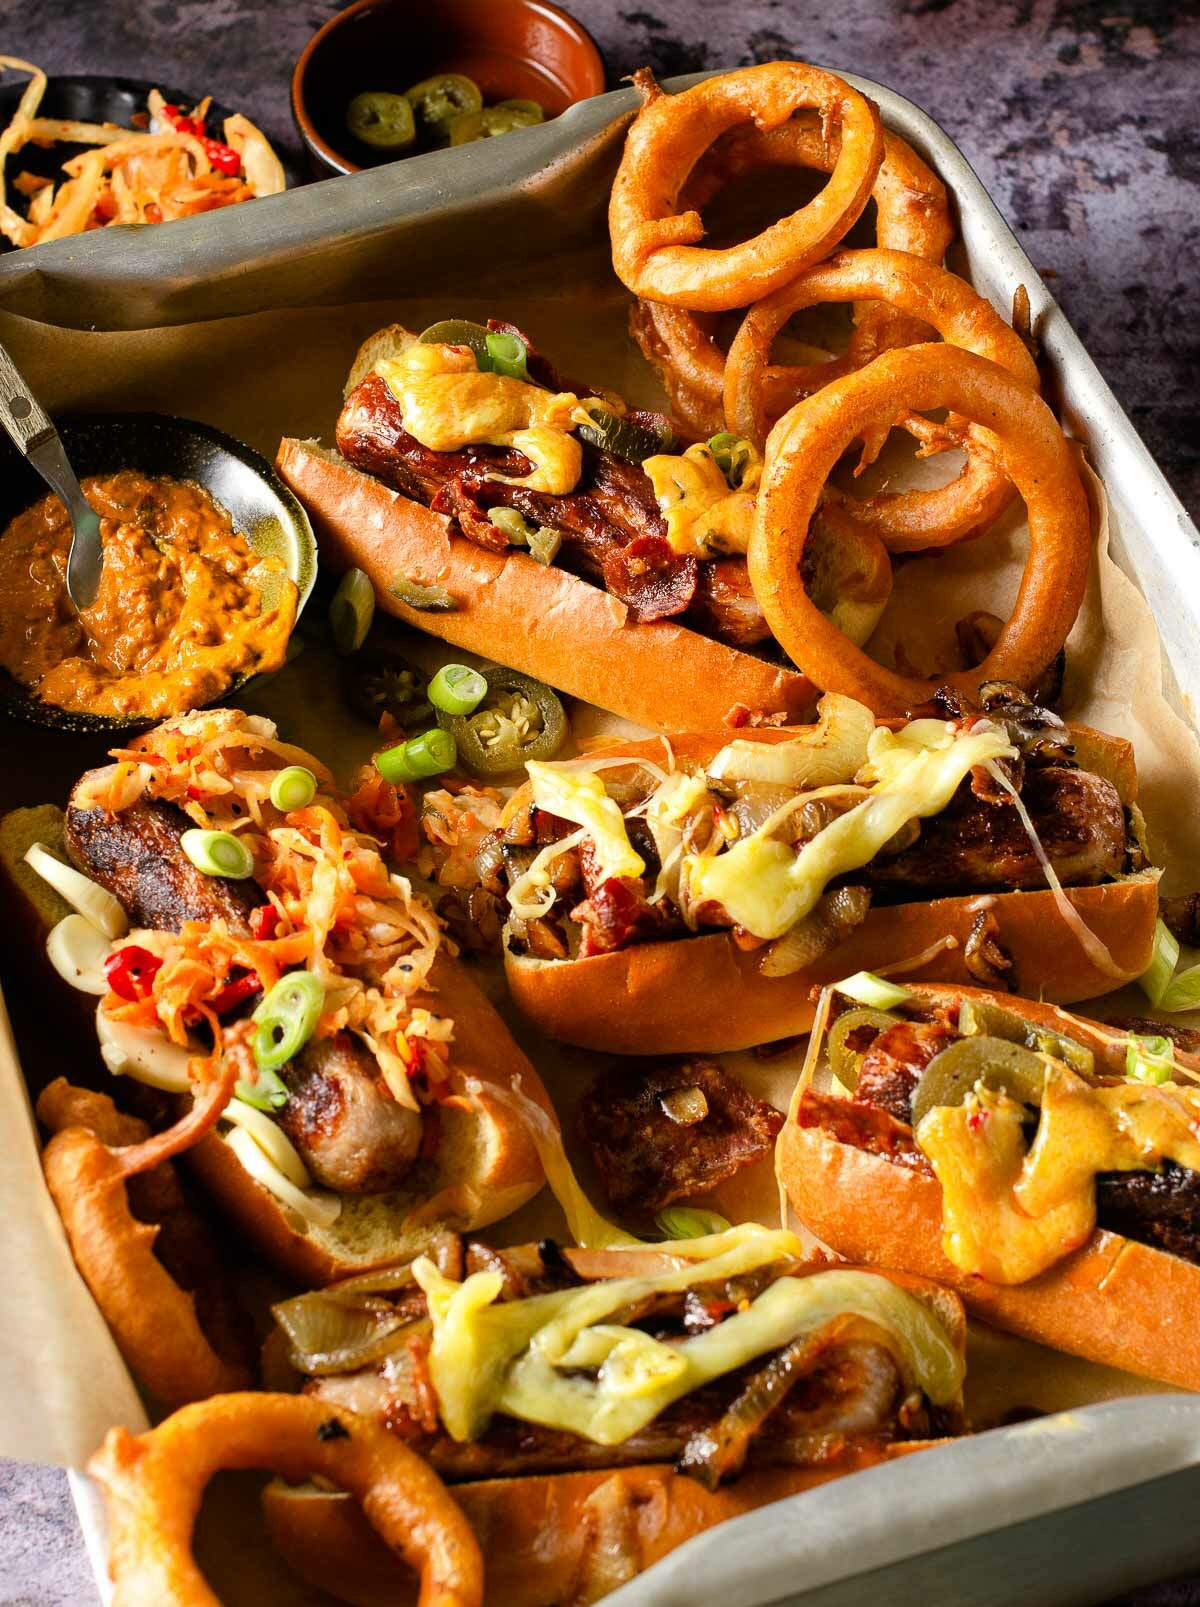 Hot dogs, loaded with toppings in a metal tray.